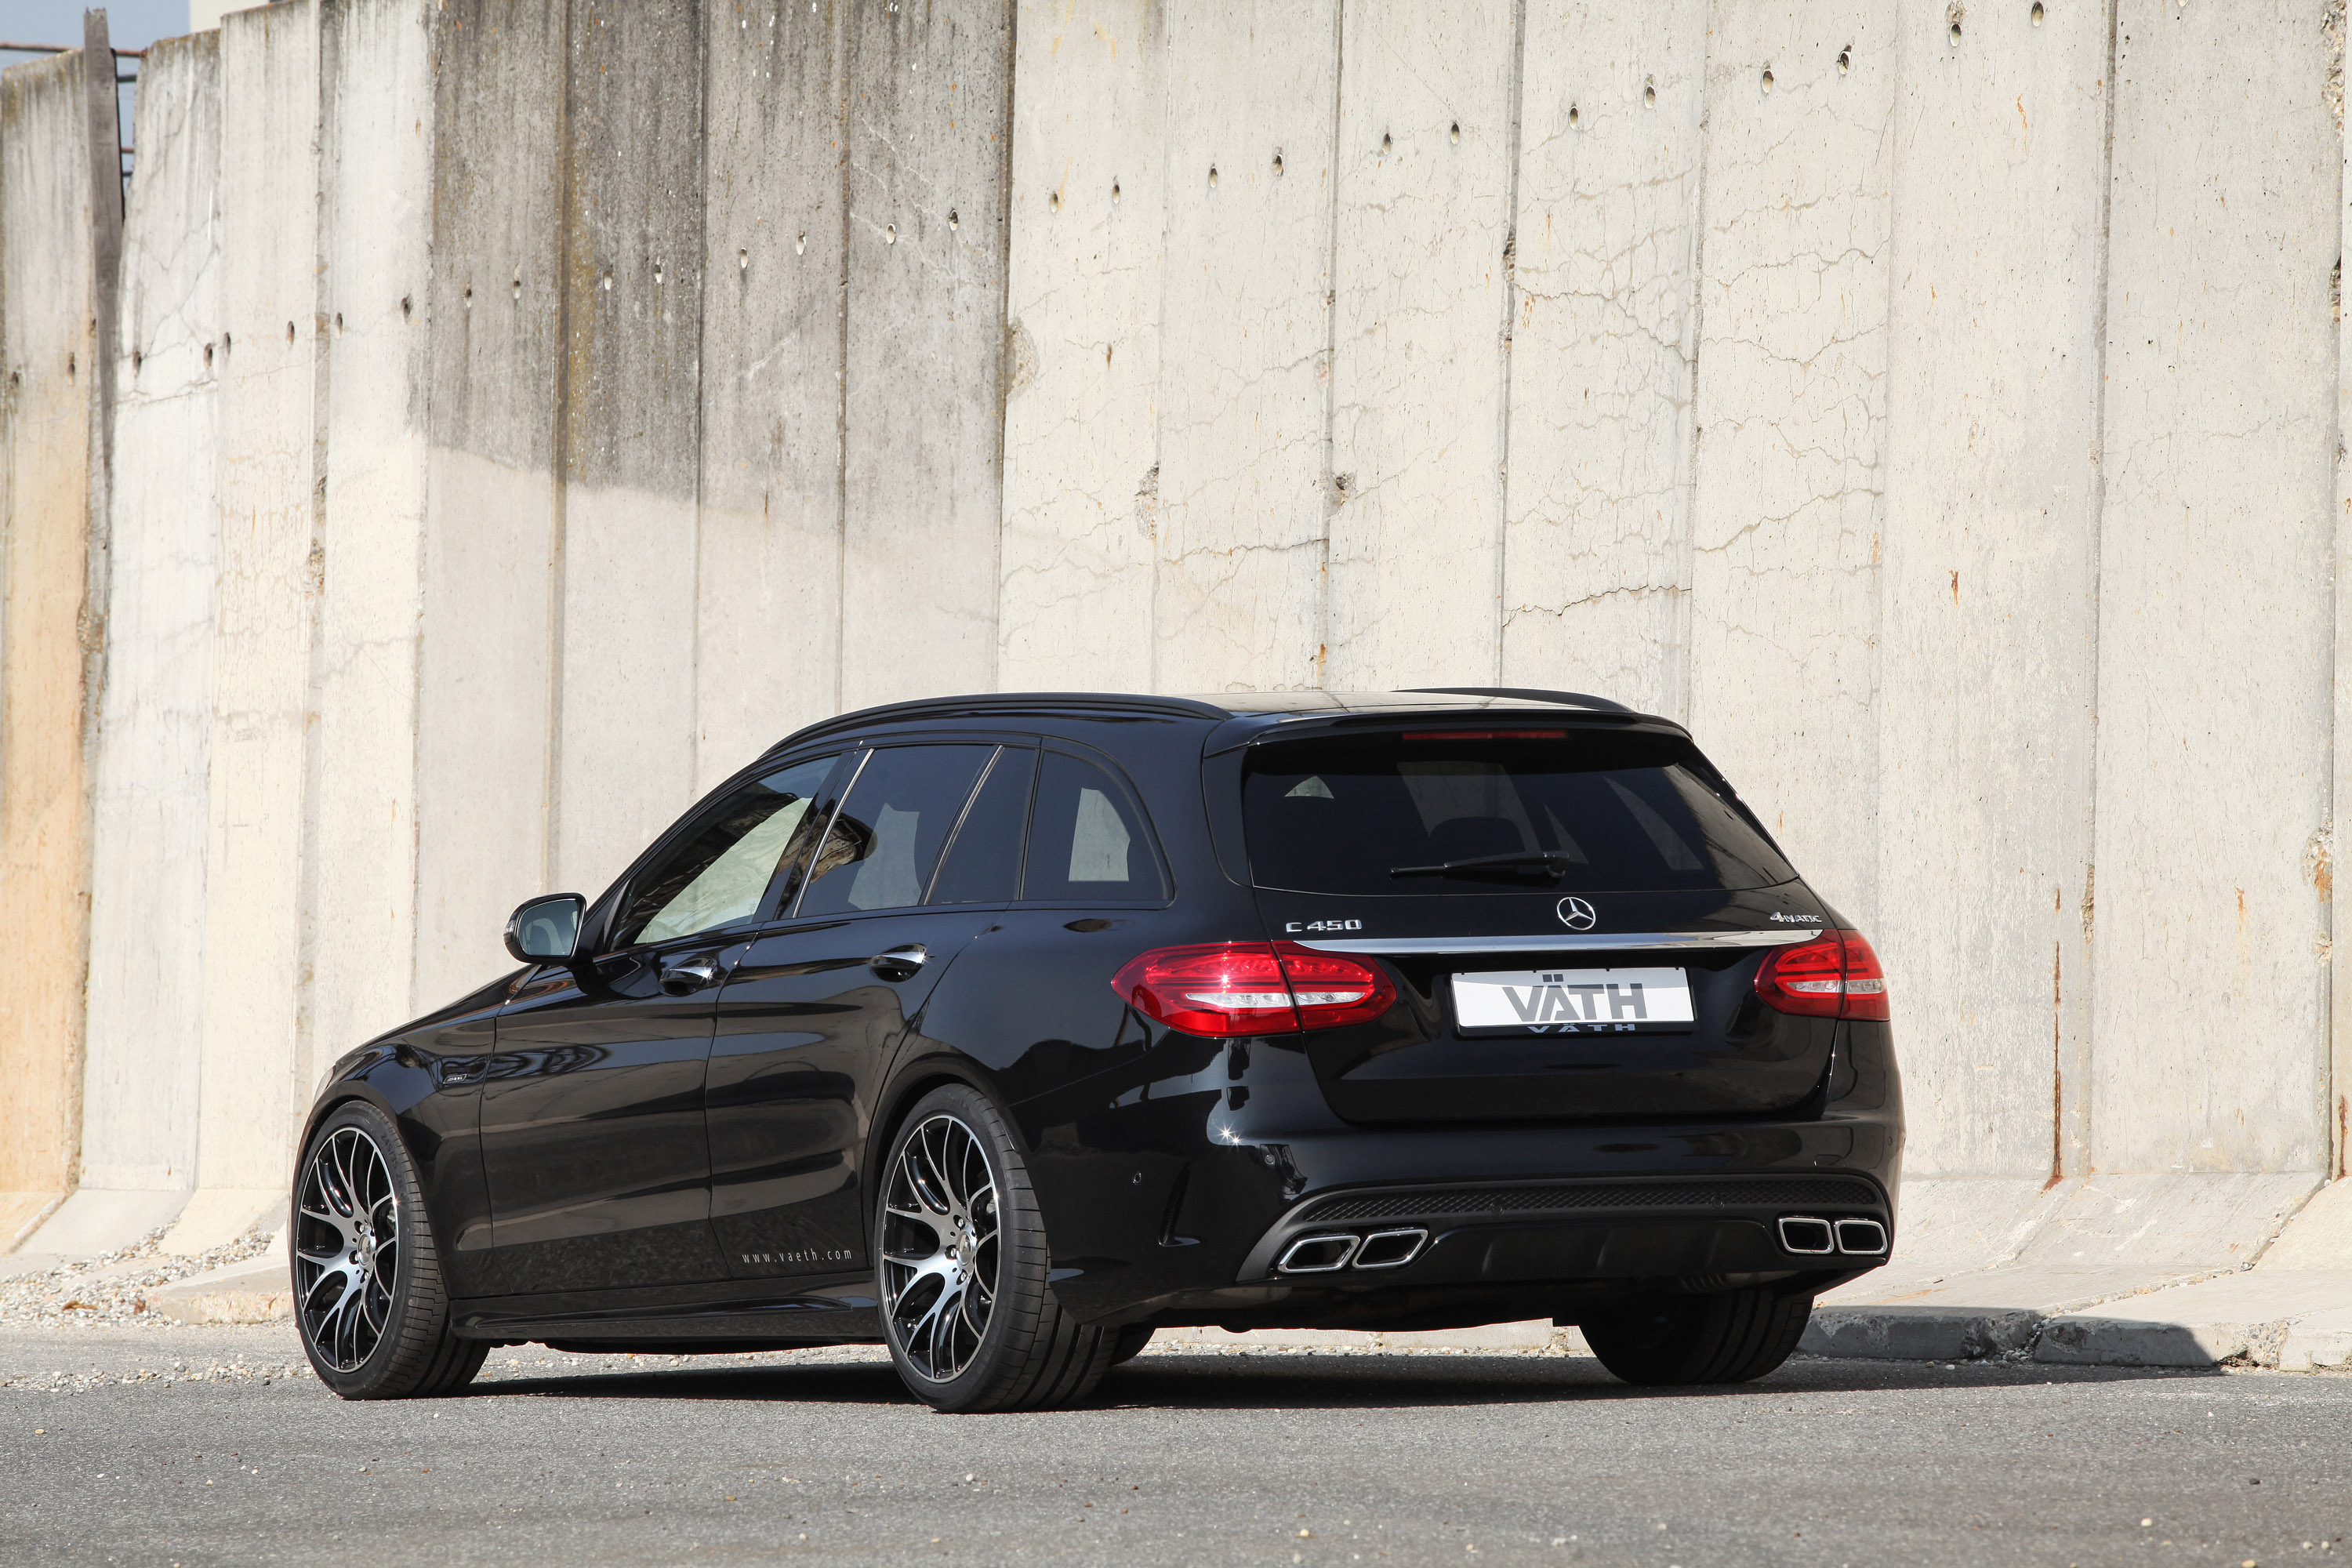 V th releases mercedes benz c450 amg 4matic for Mercedes benz c450 amg